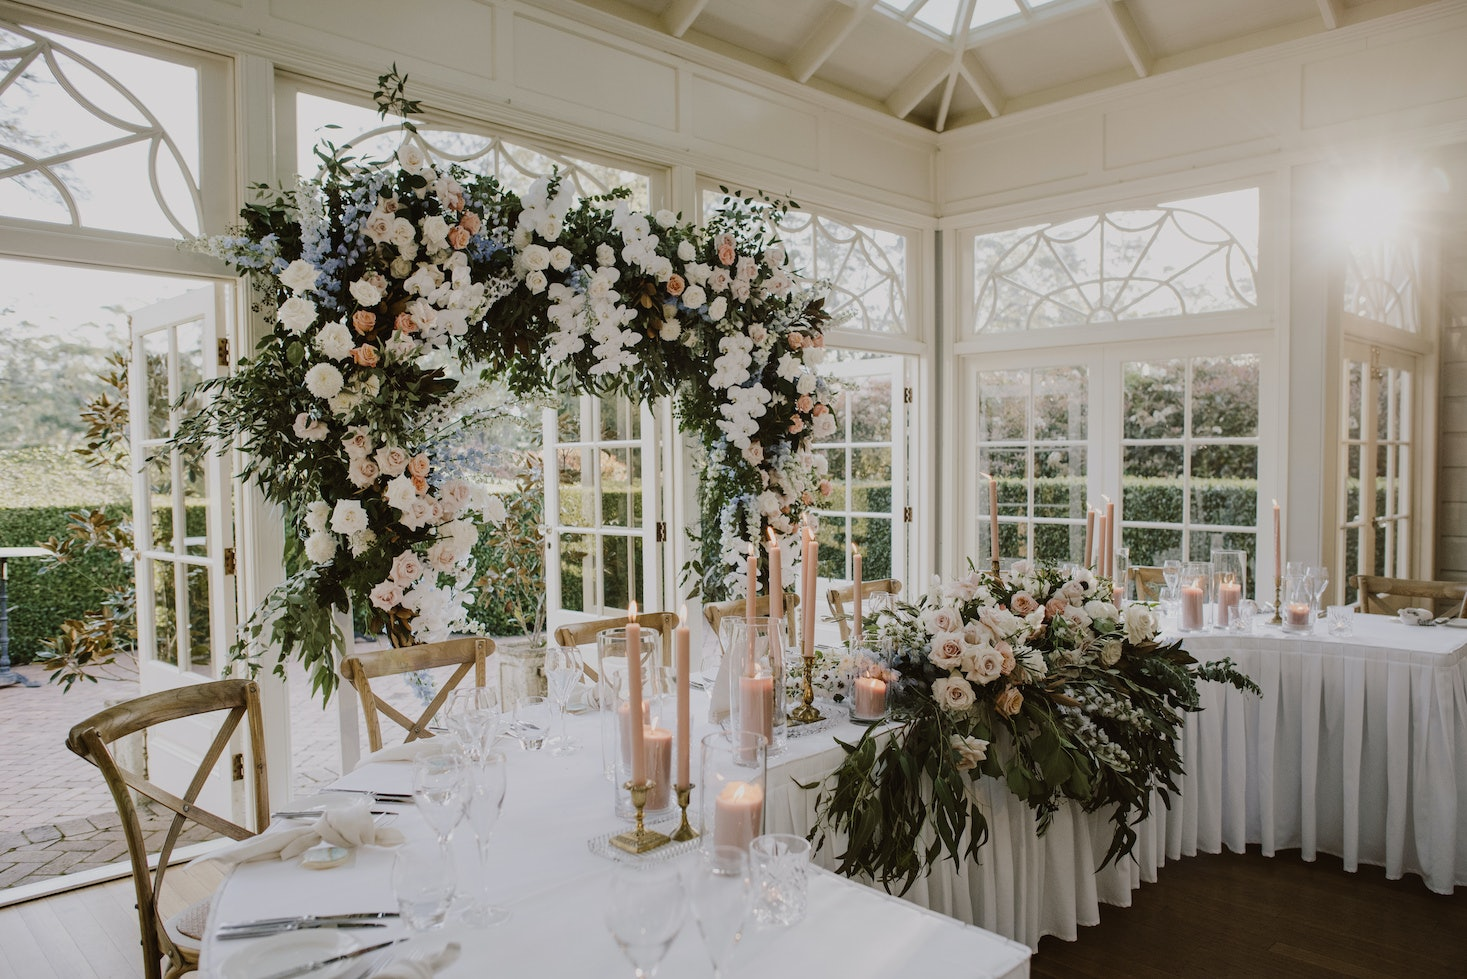 Floral arbour behind wedding parties reception table